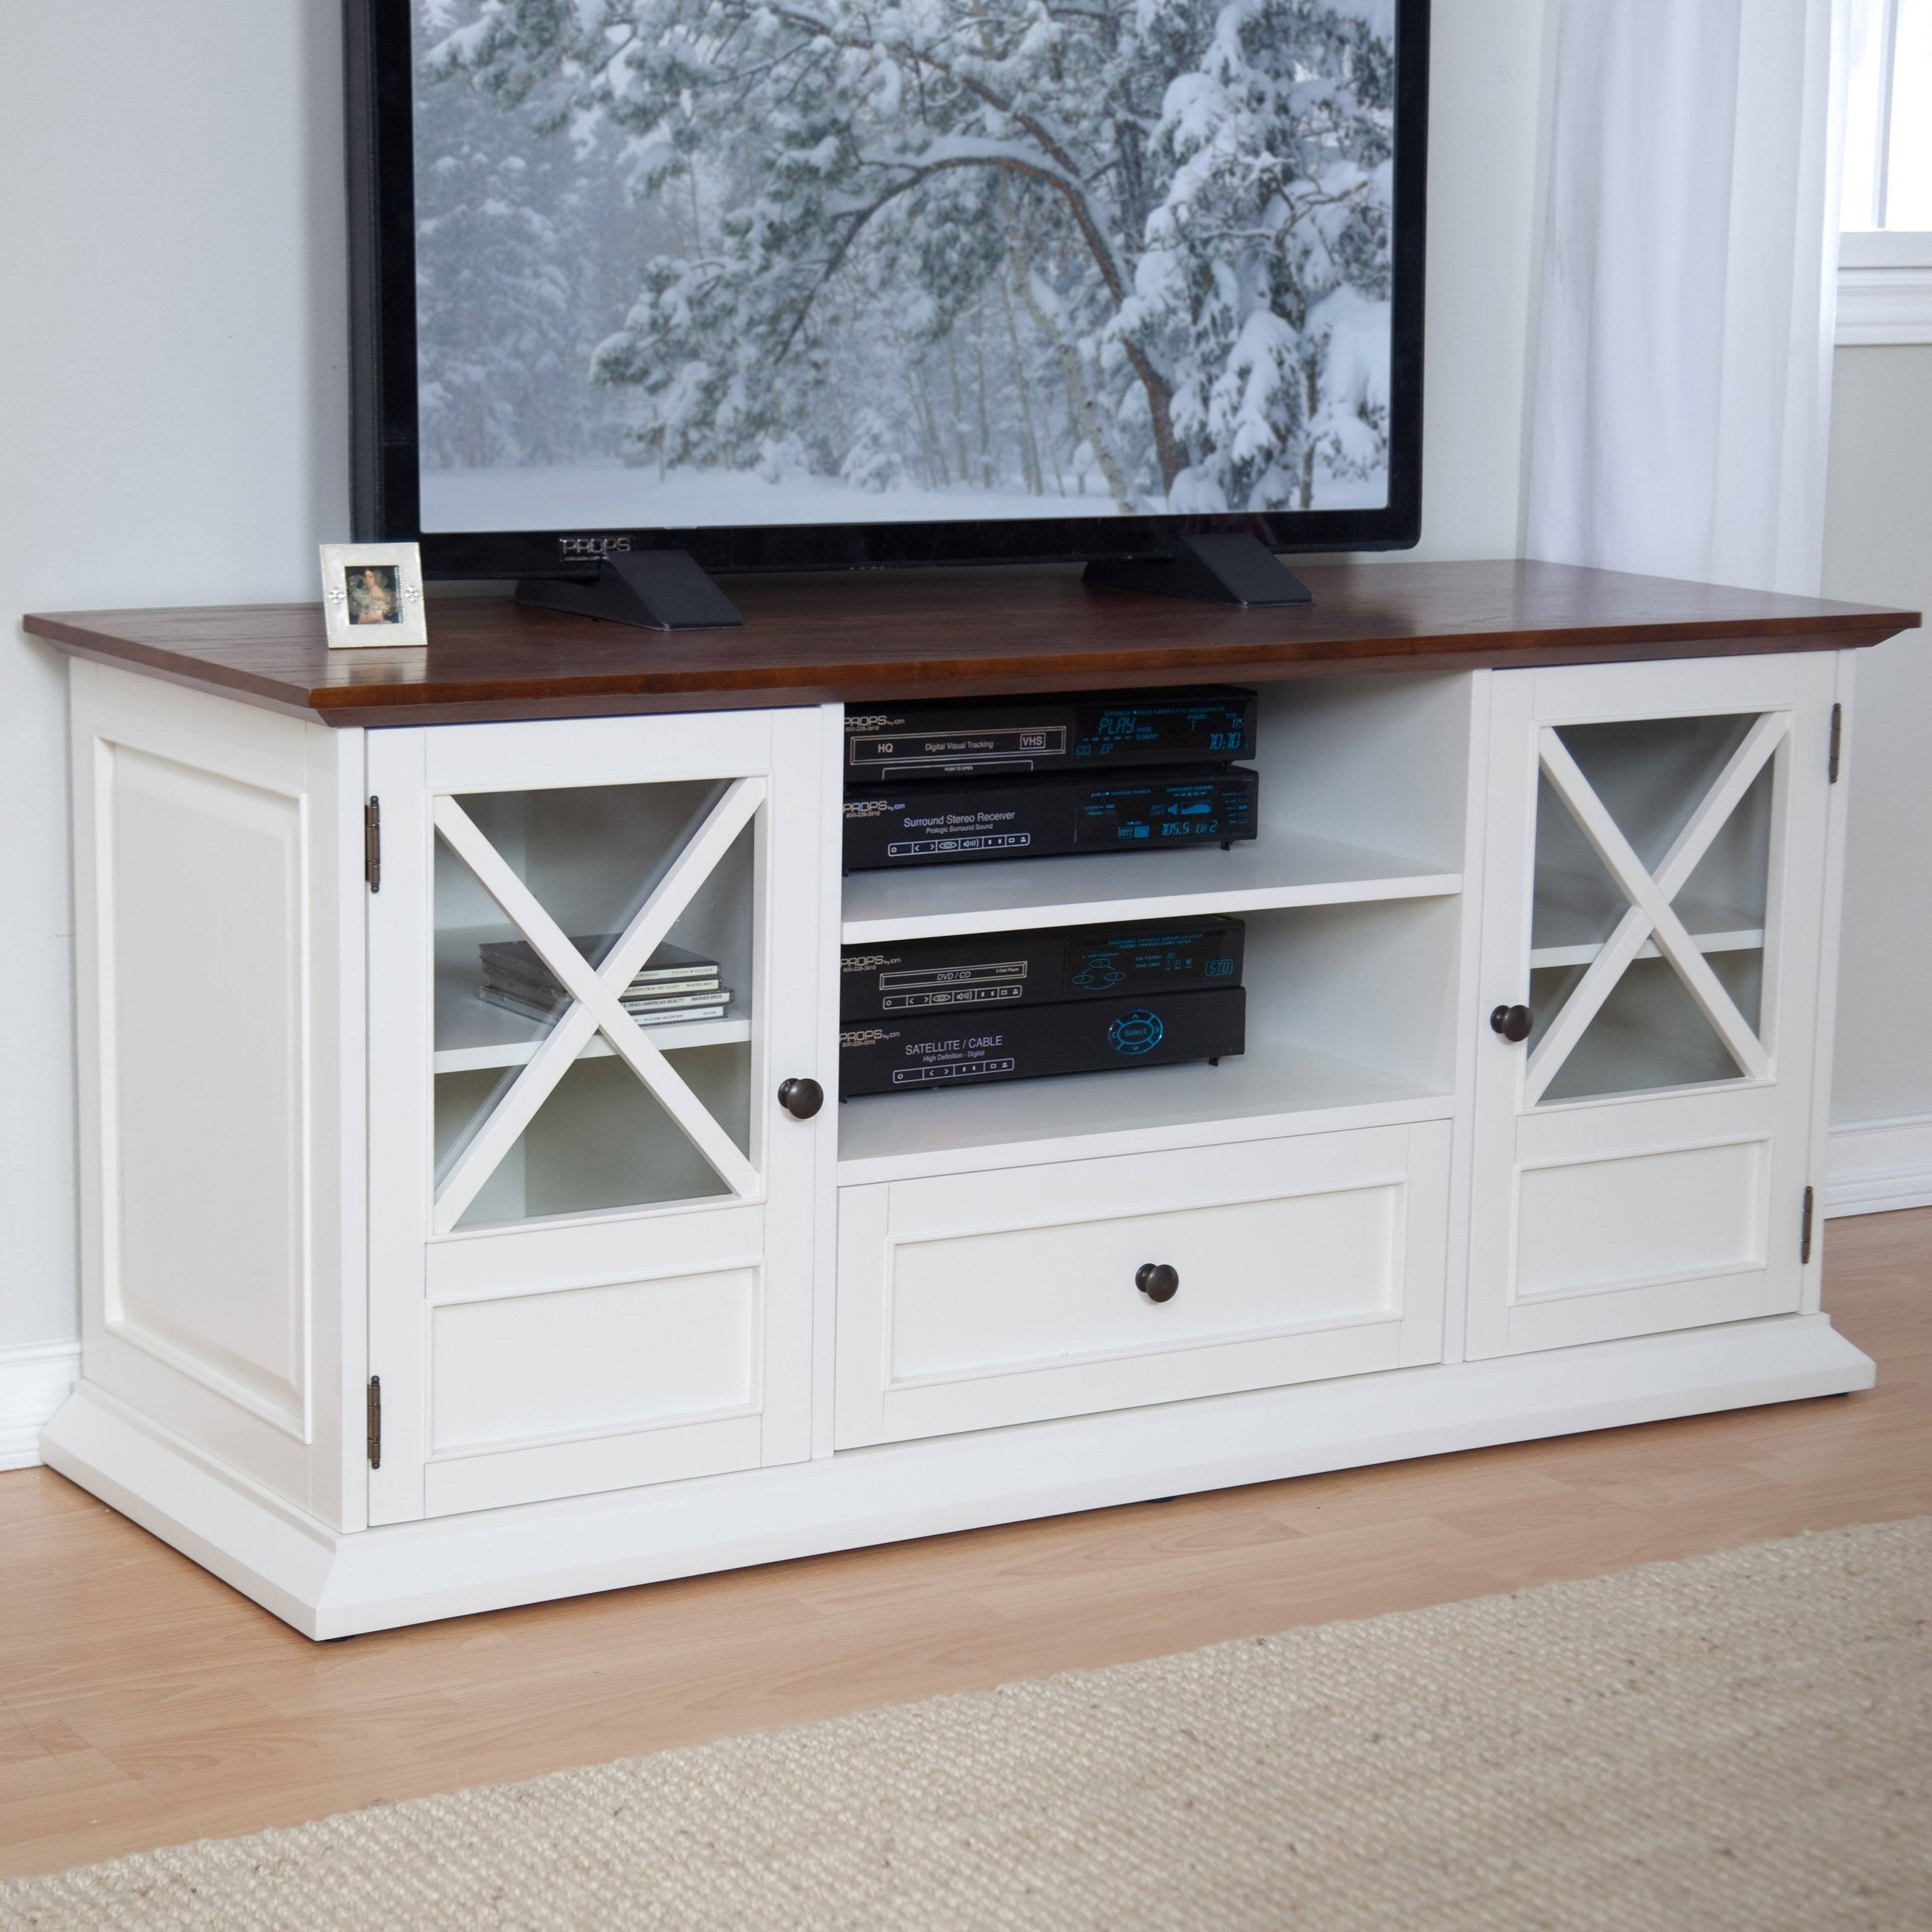 Belham Living Hampton Tv Stand – White/oak | Hayneedle In Wooden Tv Stands For 55 Inch Flat Screen (View 10 of 15)